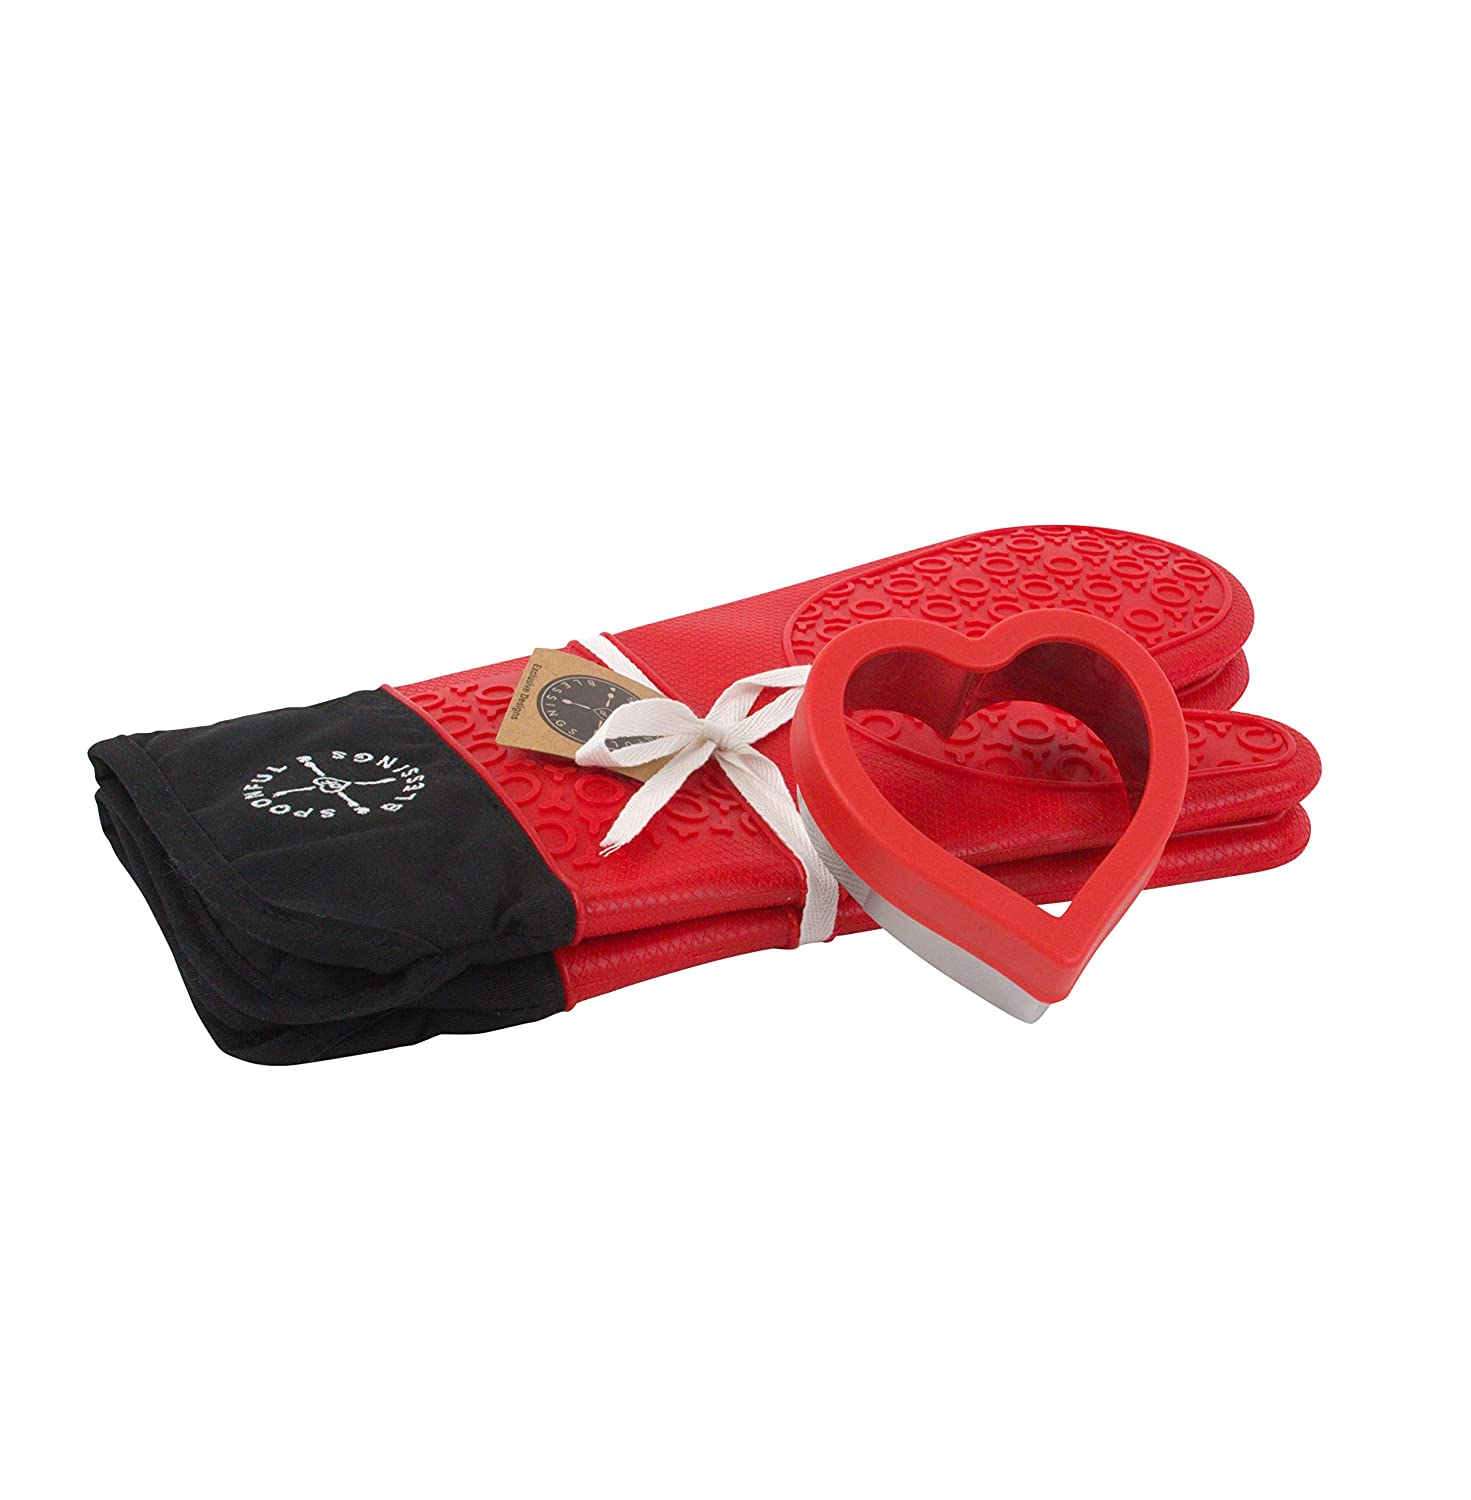 Oven Mitts -1 Pair Extra Long Red Professional Silicone Oven Mitt - With Black on Inside, for Easy Cleaning. Heat Resistant Mittens - Kitchen 500 Degrees F-Cooking Gloves -1 Heart Shape Cookie Cutter.